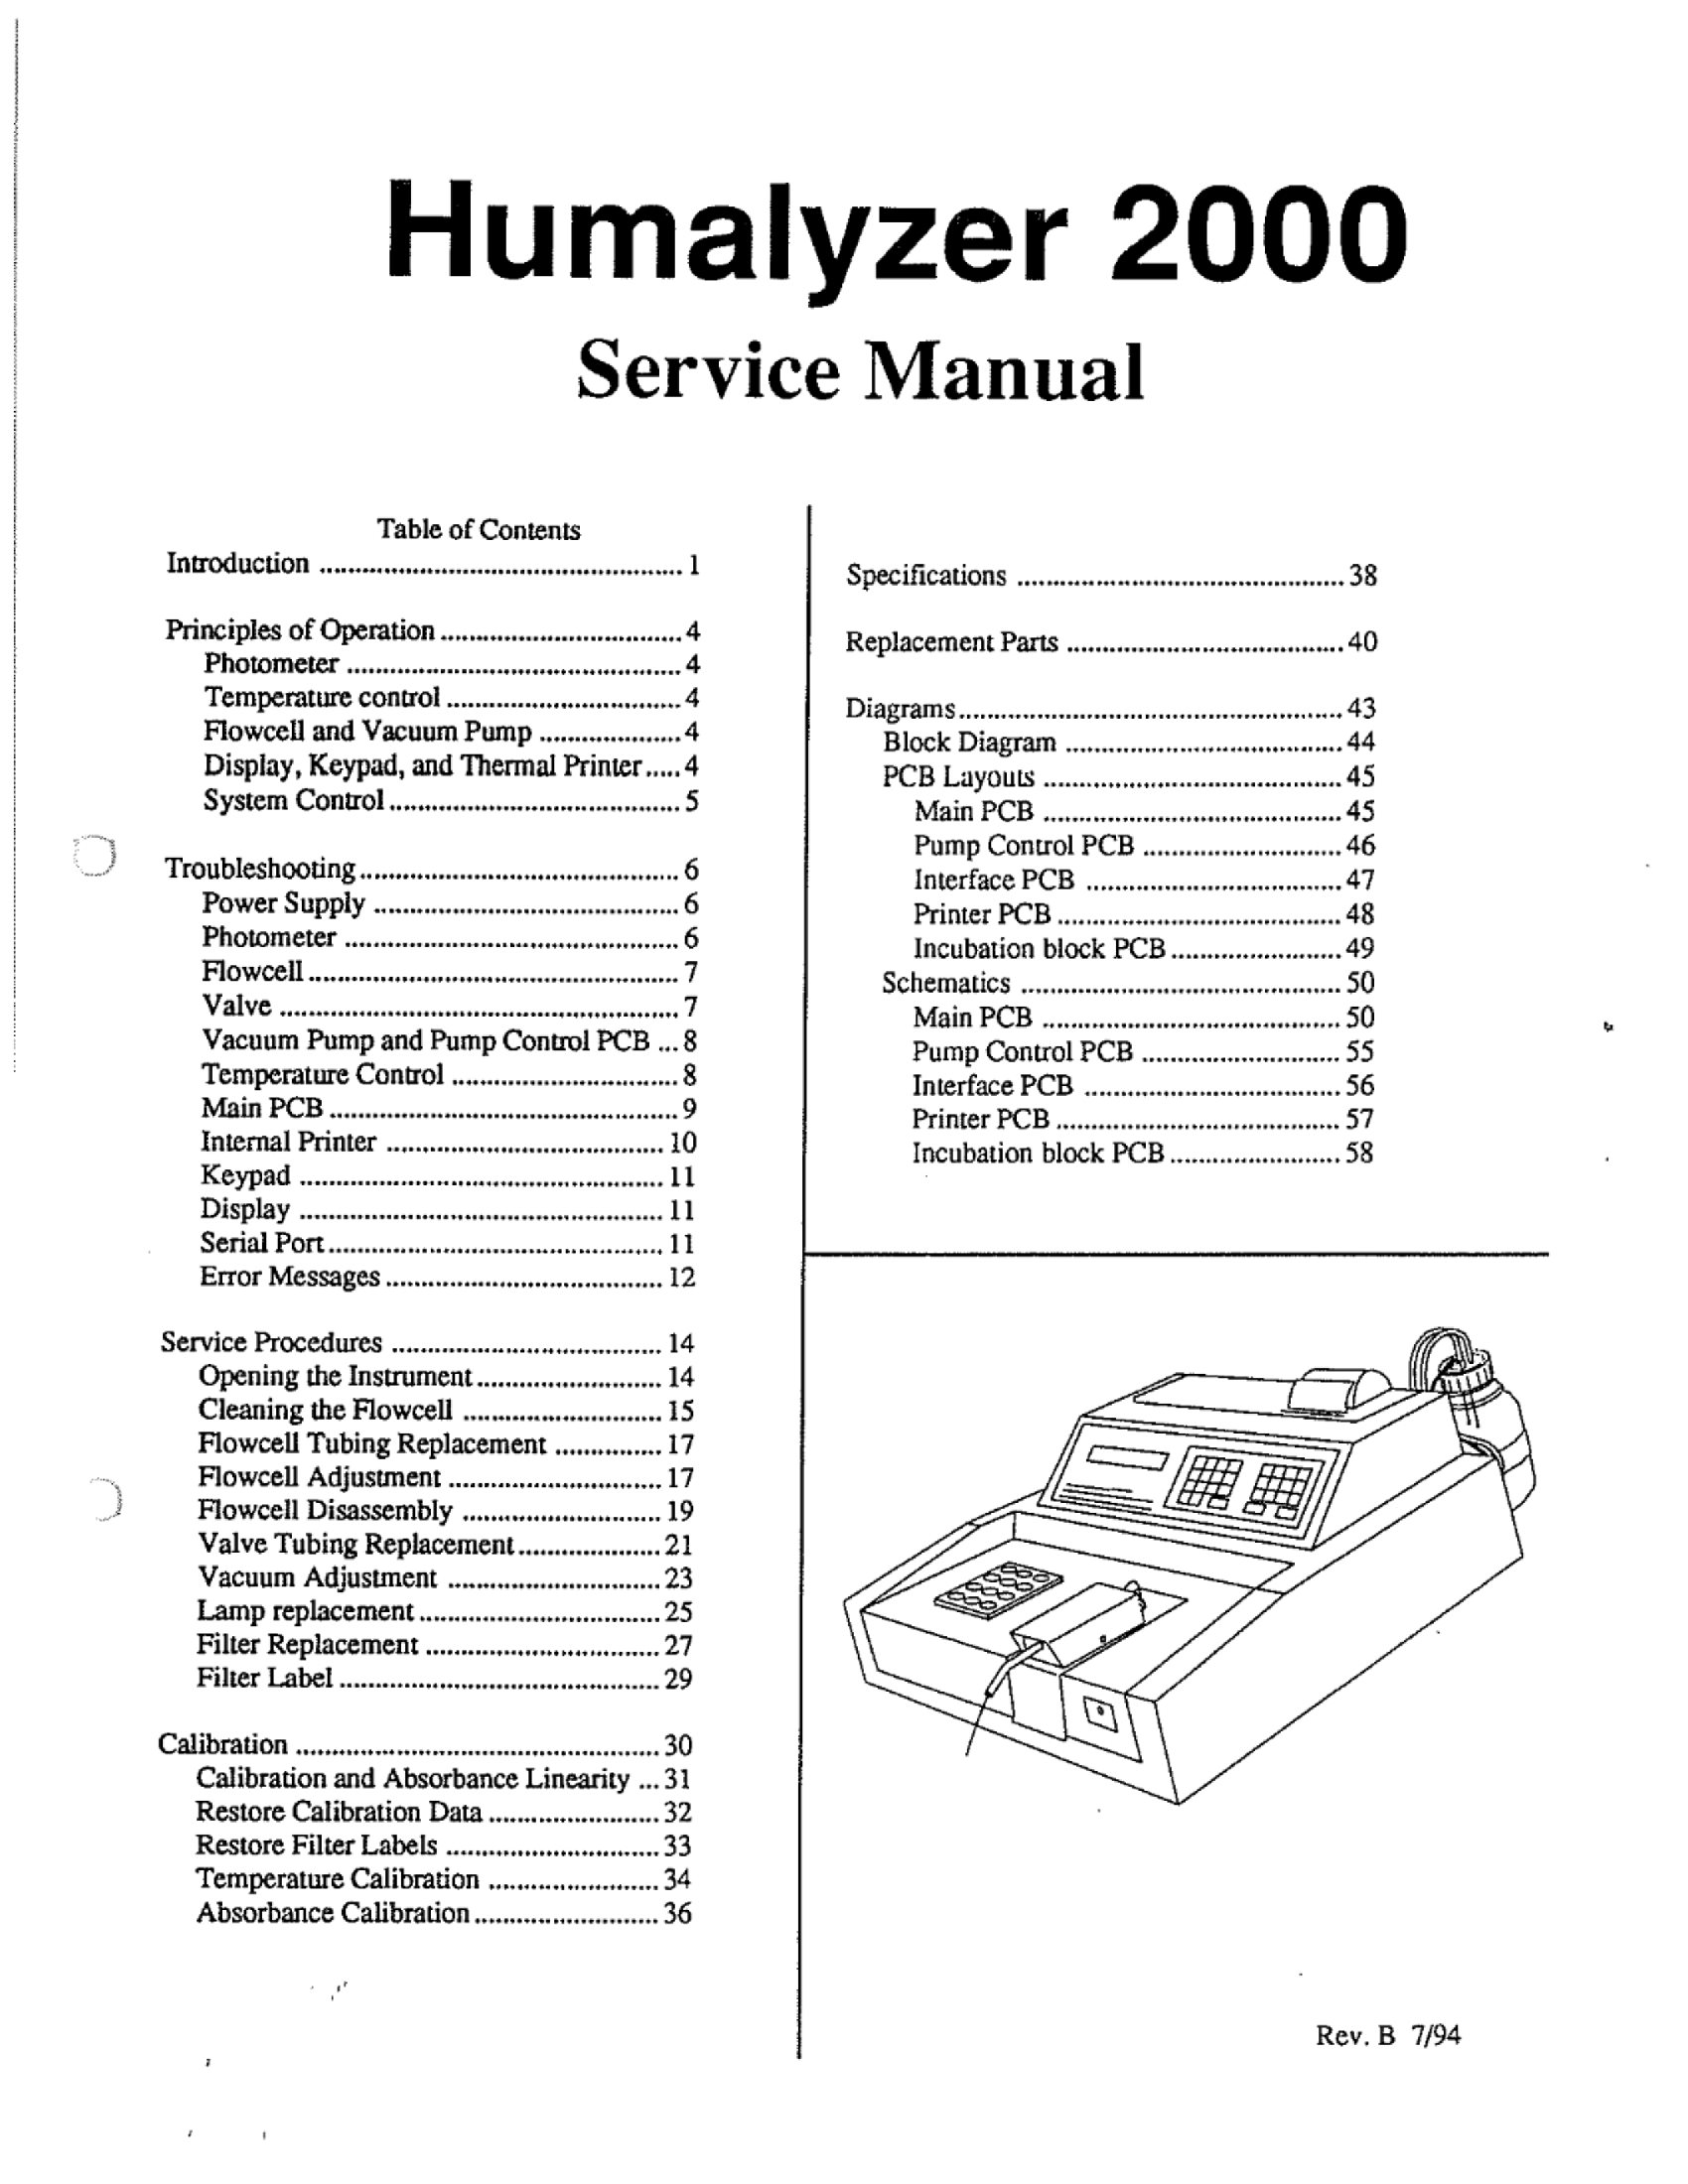 Human Humalyzer 2000 Service Manual